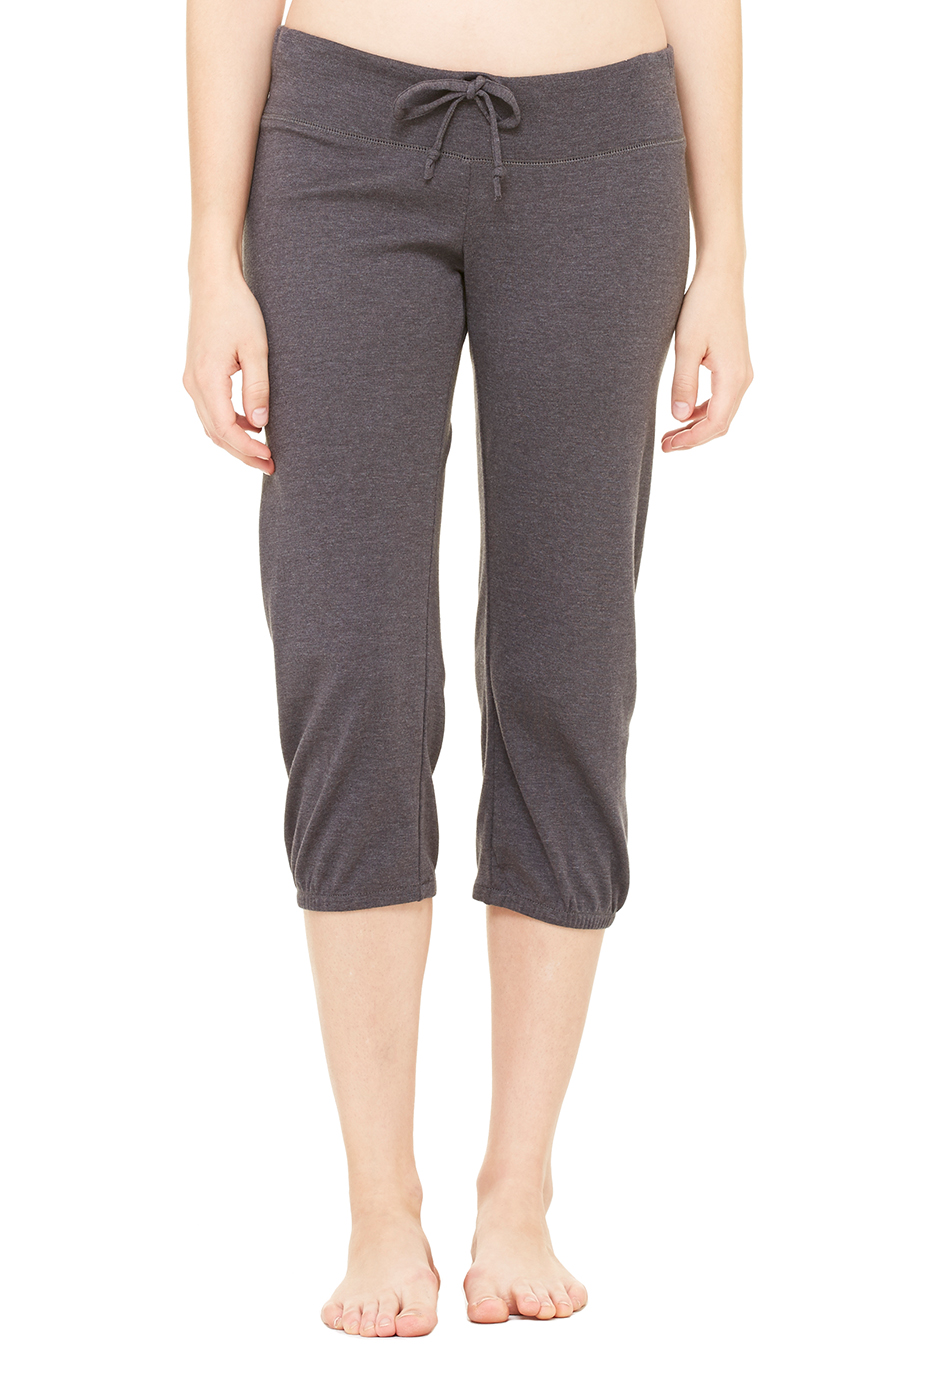 Women's Capri Scrunch Pant | Bella-Canvas